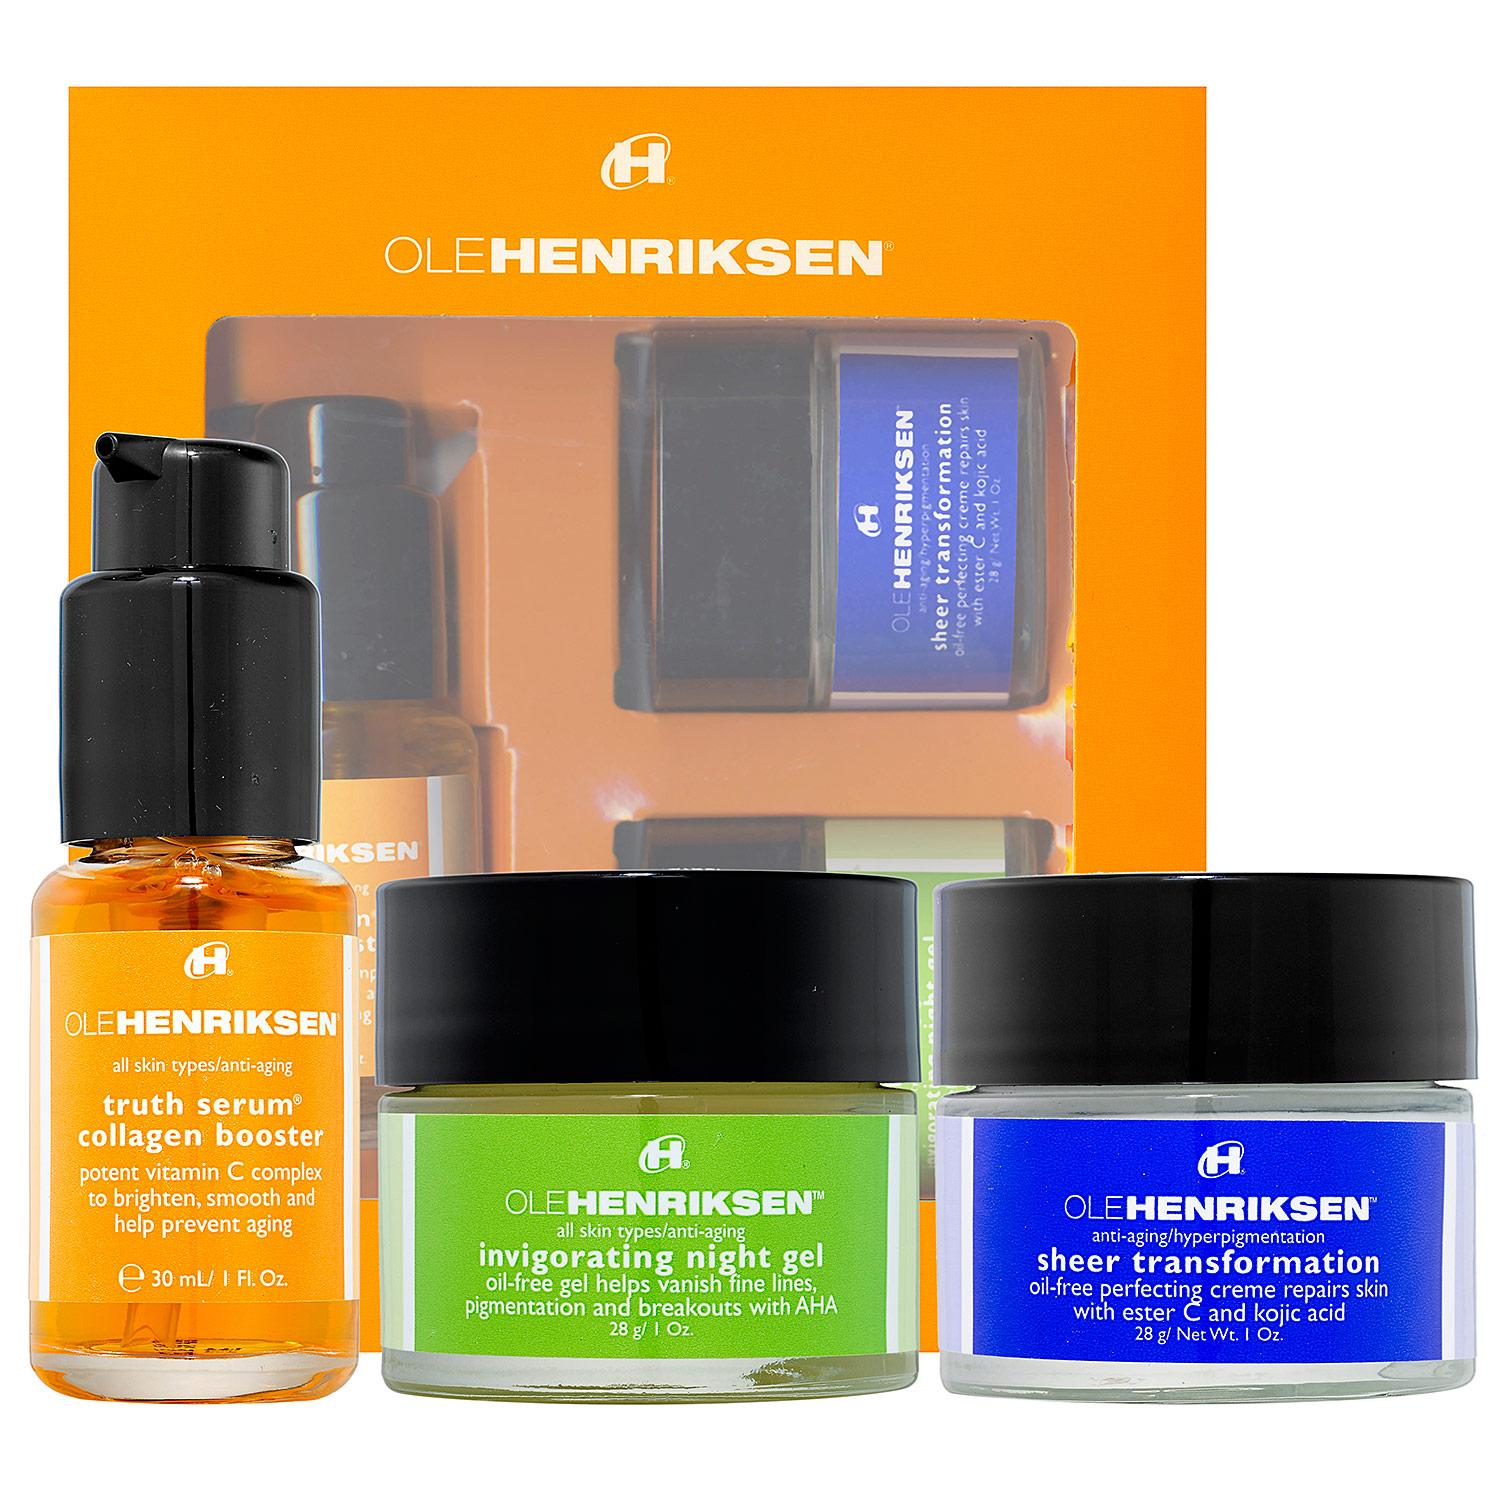 ole henriksen truth serum percent vitamin c